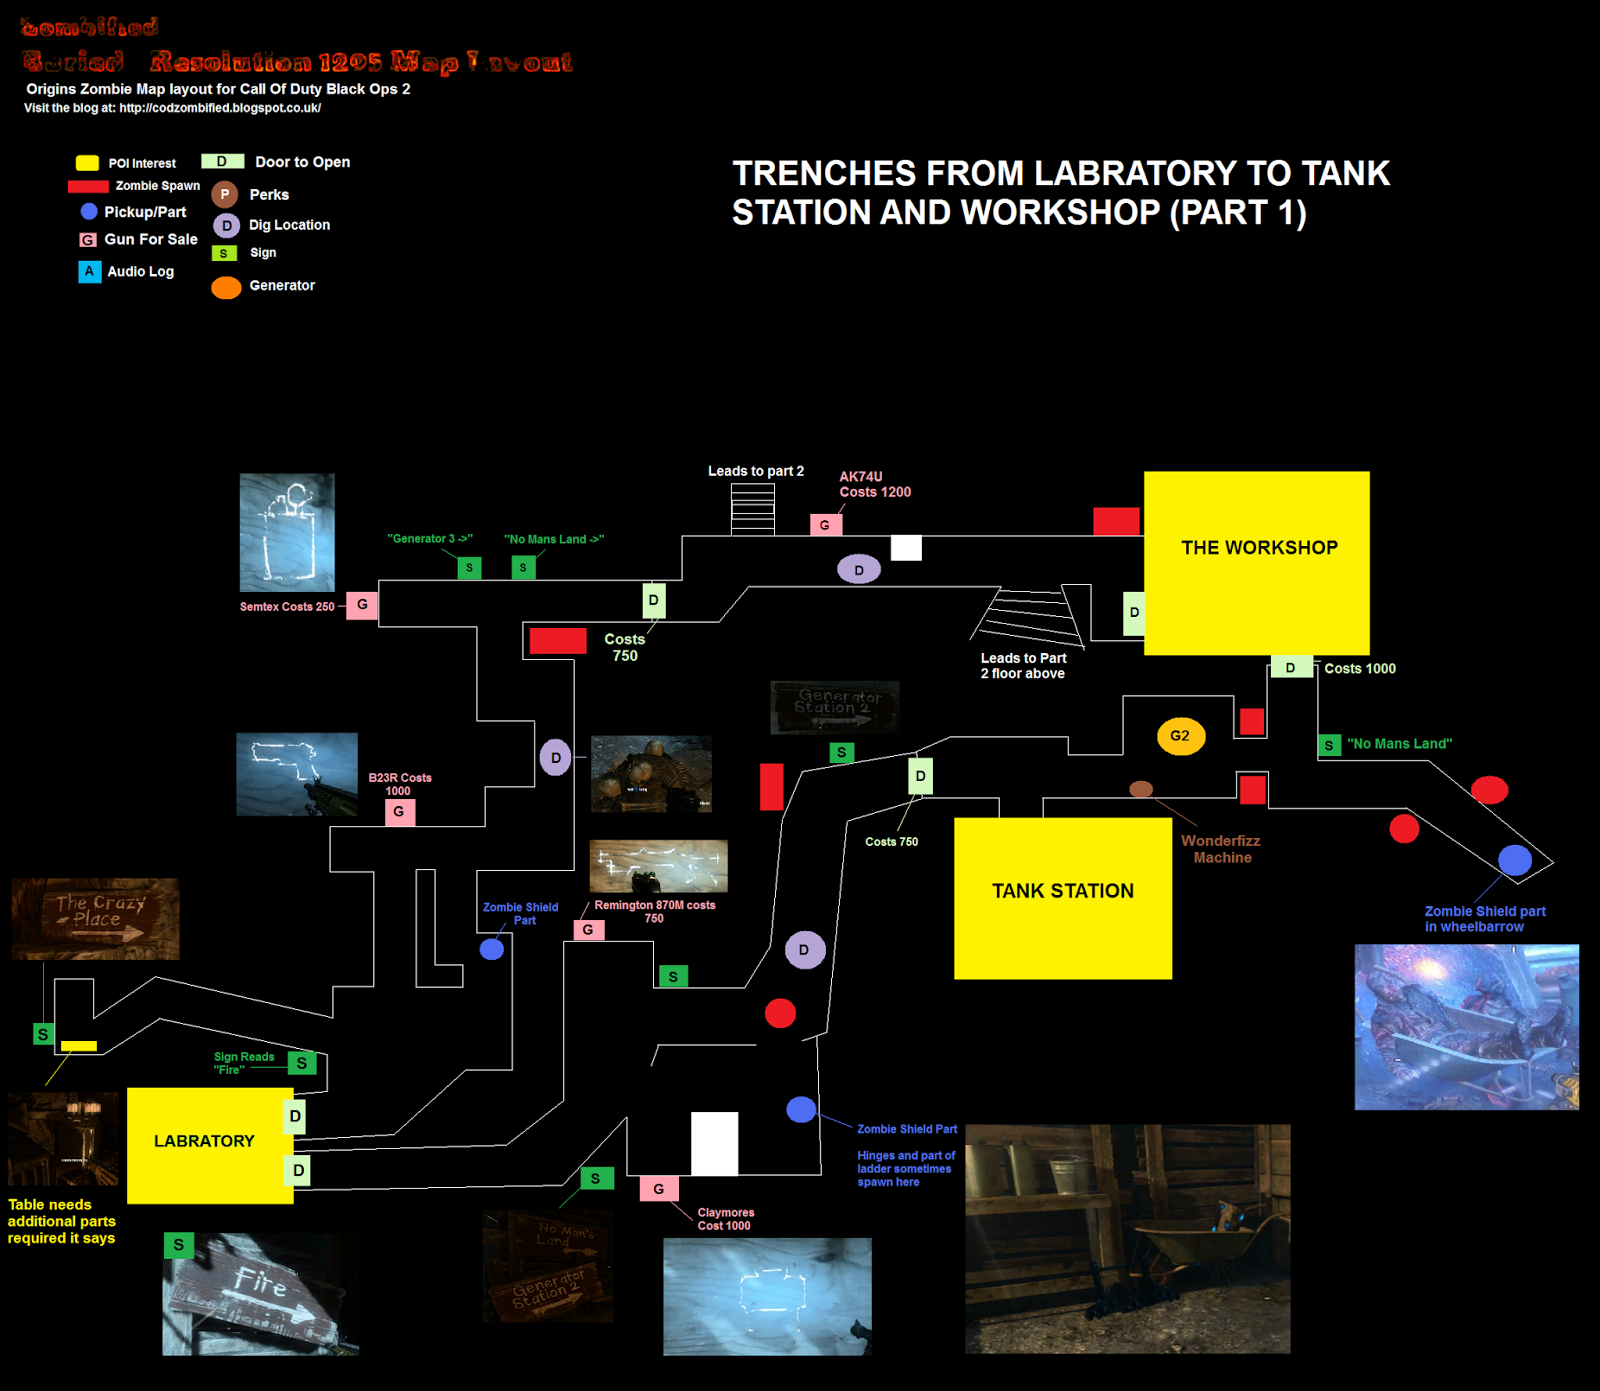 Zombies Origins Map on call of duty 3 zombies map, arkham asylum batcave entrance on map, fake map, origins perk bottle locations in map, cod 2 zombies map, origins zombies weapons, verruckt zombies map, nuketown zombies map, ascension map, in black ops 2 zombies parts map, best cod zombies map, snow black ops zombies map, advanced warfare zombies map,